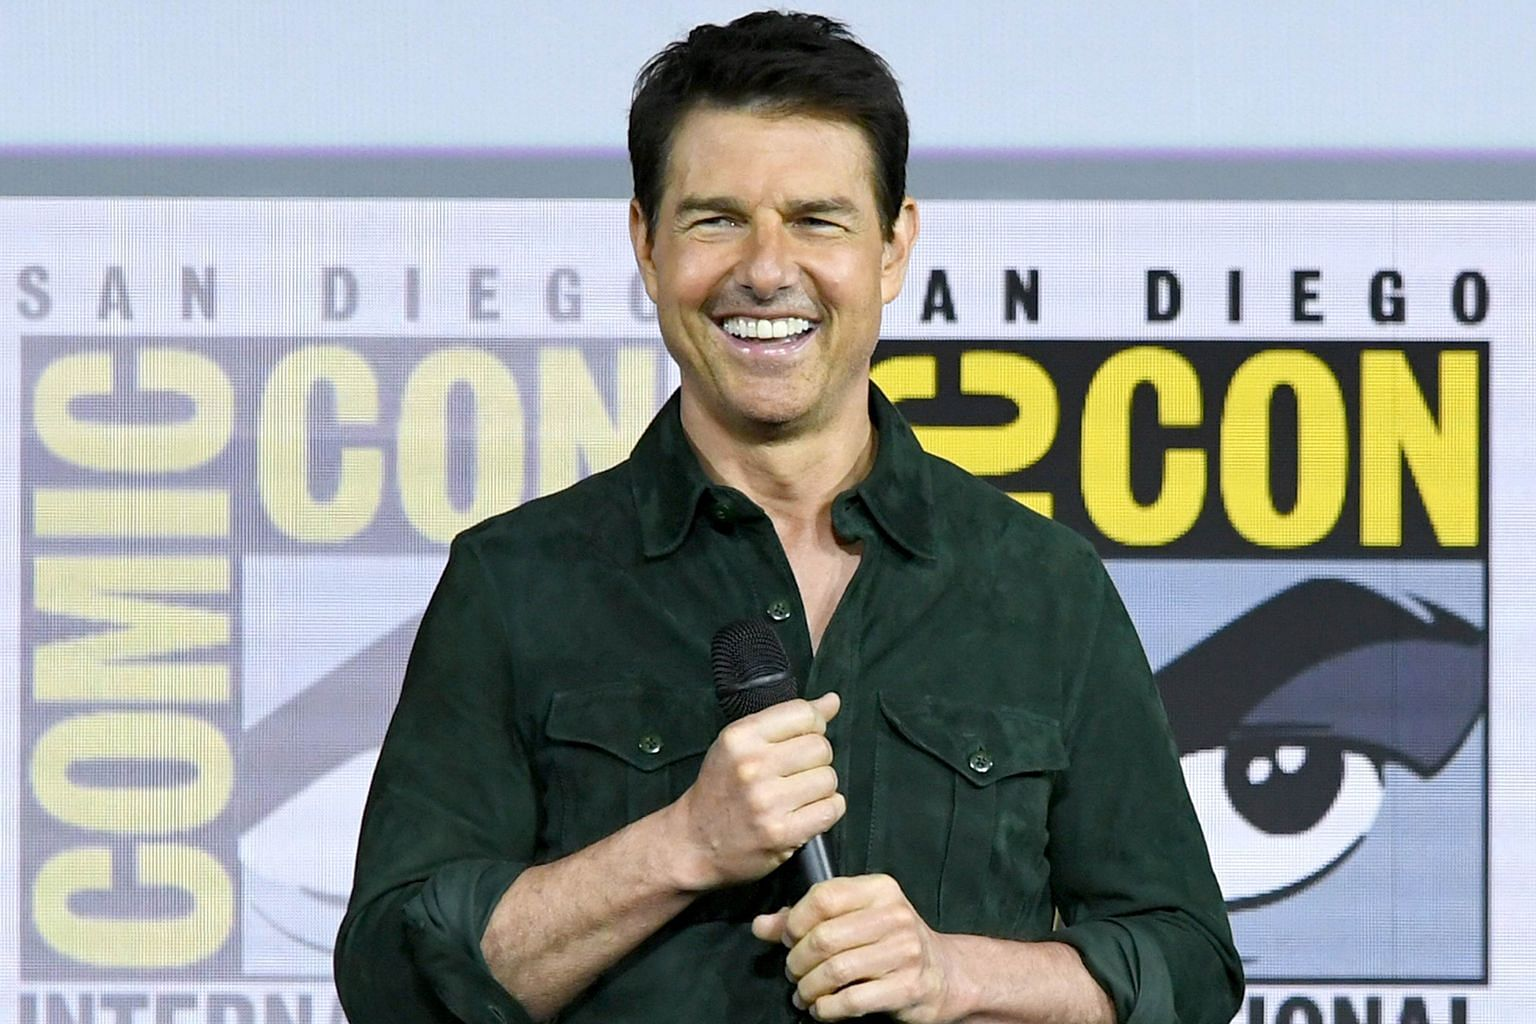 """Tom Cruise unveiling the trailer for Top Gun: Maverick at San Diego Comic-Con on Thursday, calling it a """"love letter to aviation""""."""